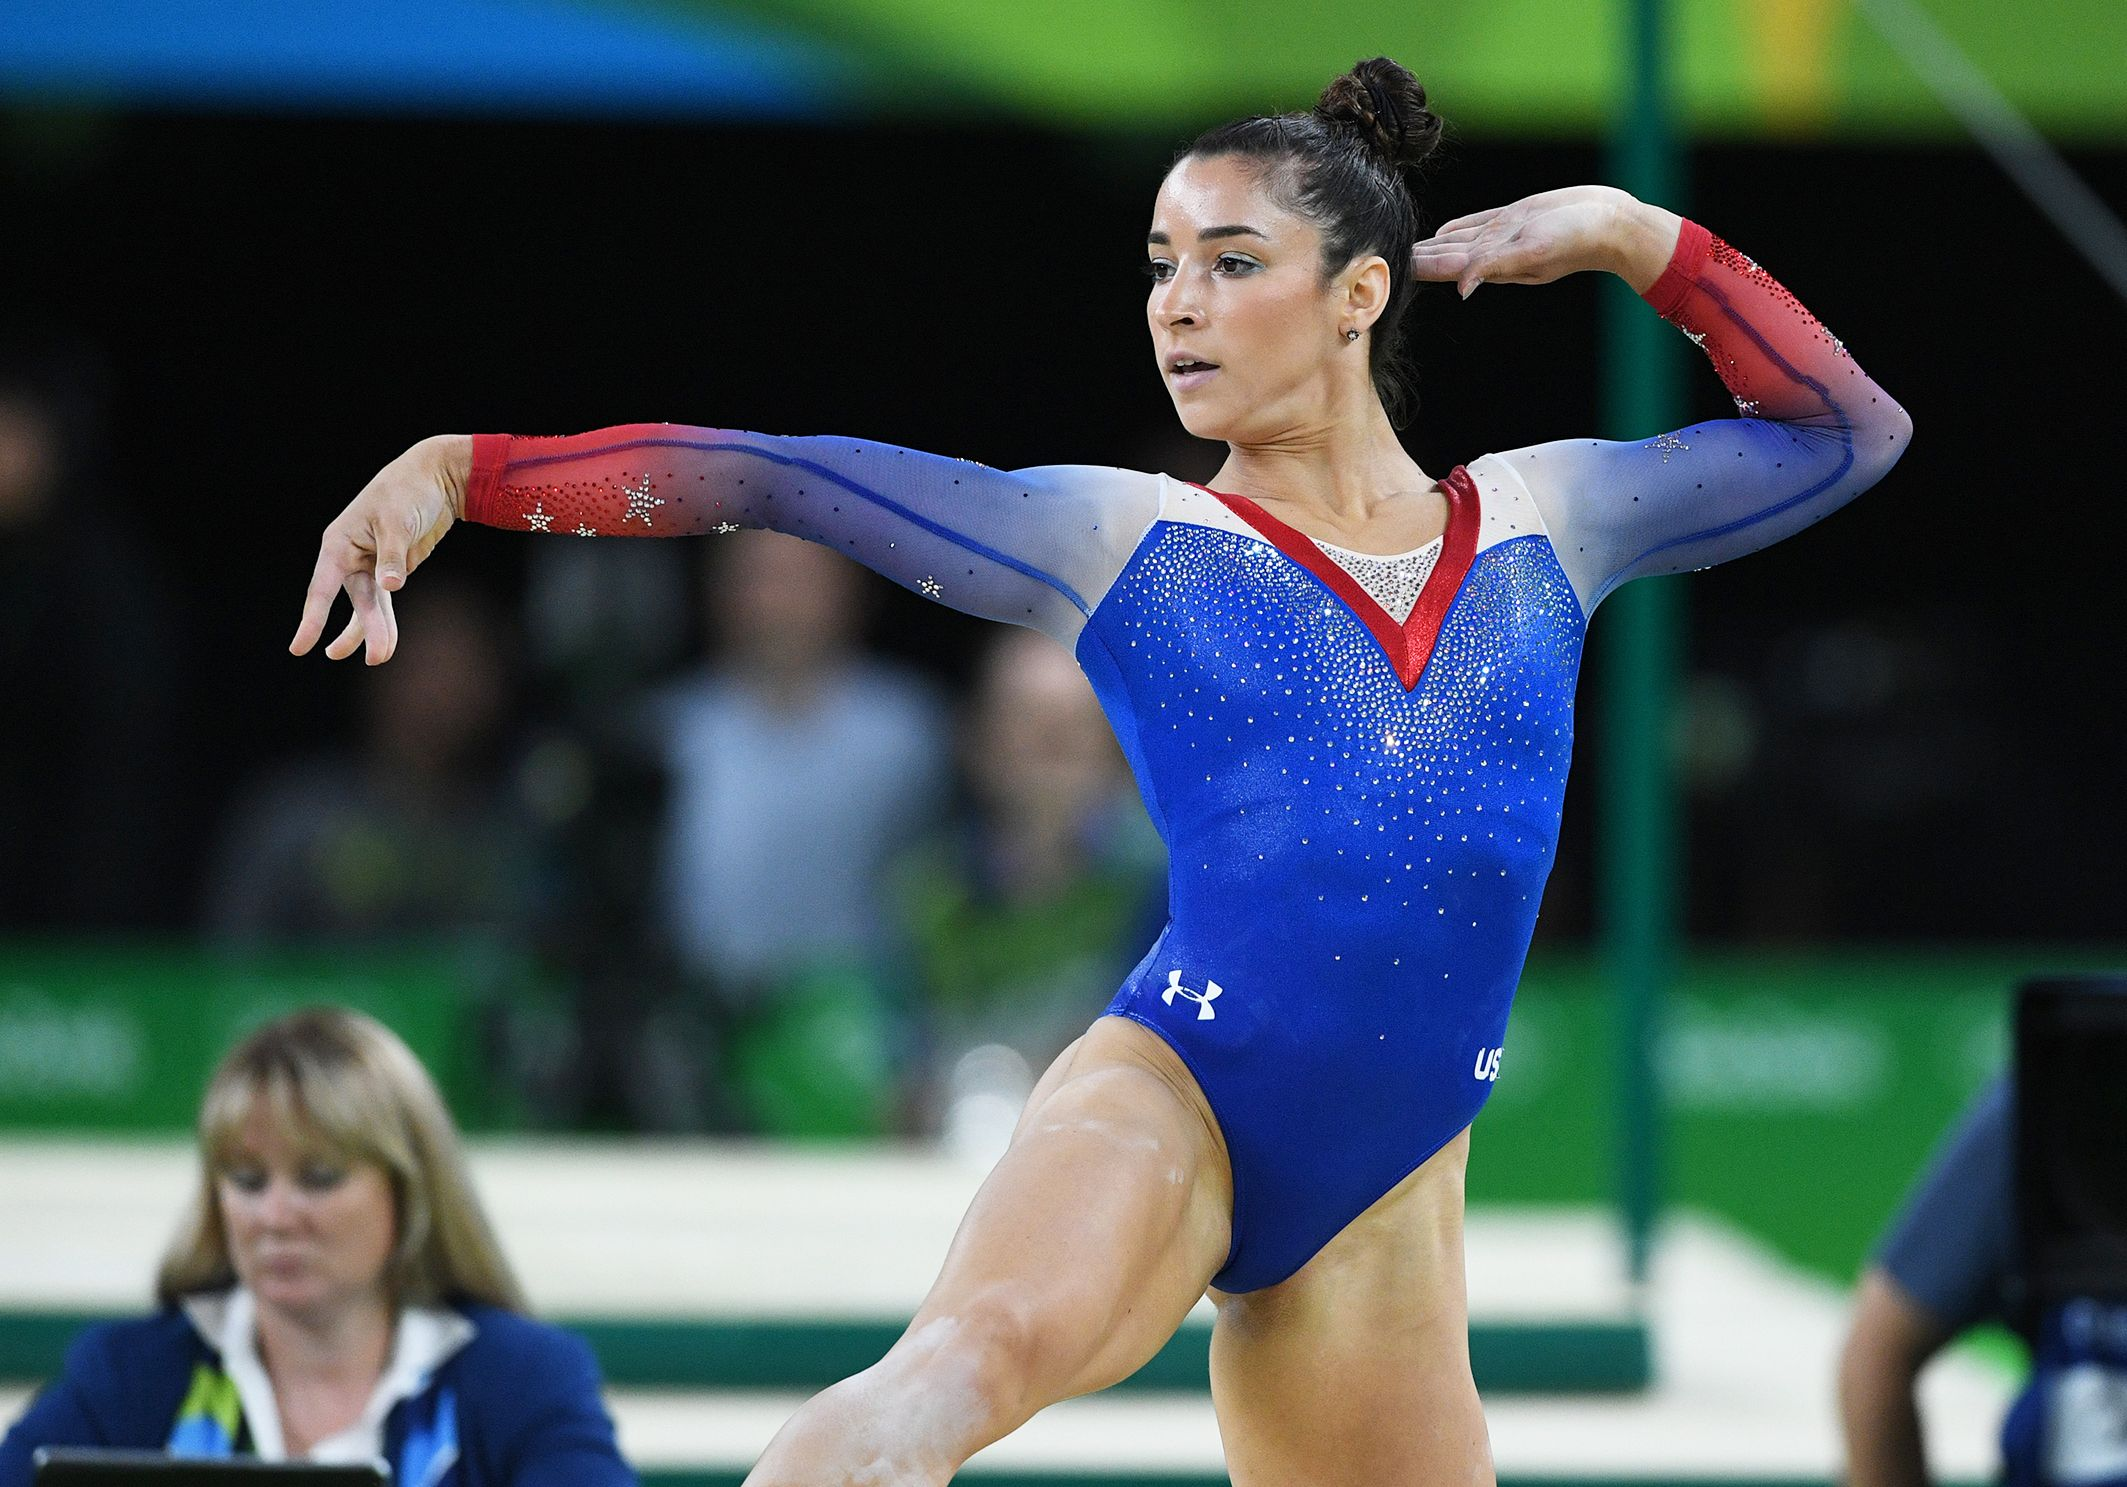 Aly Raisman Is Once Again Going To The Mat—This Time To Fight For Survivors Of Sexual Assault